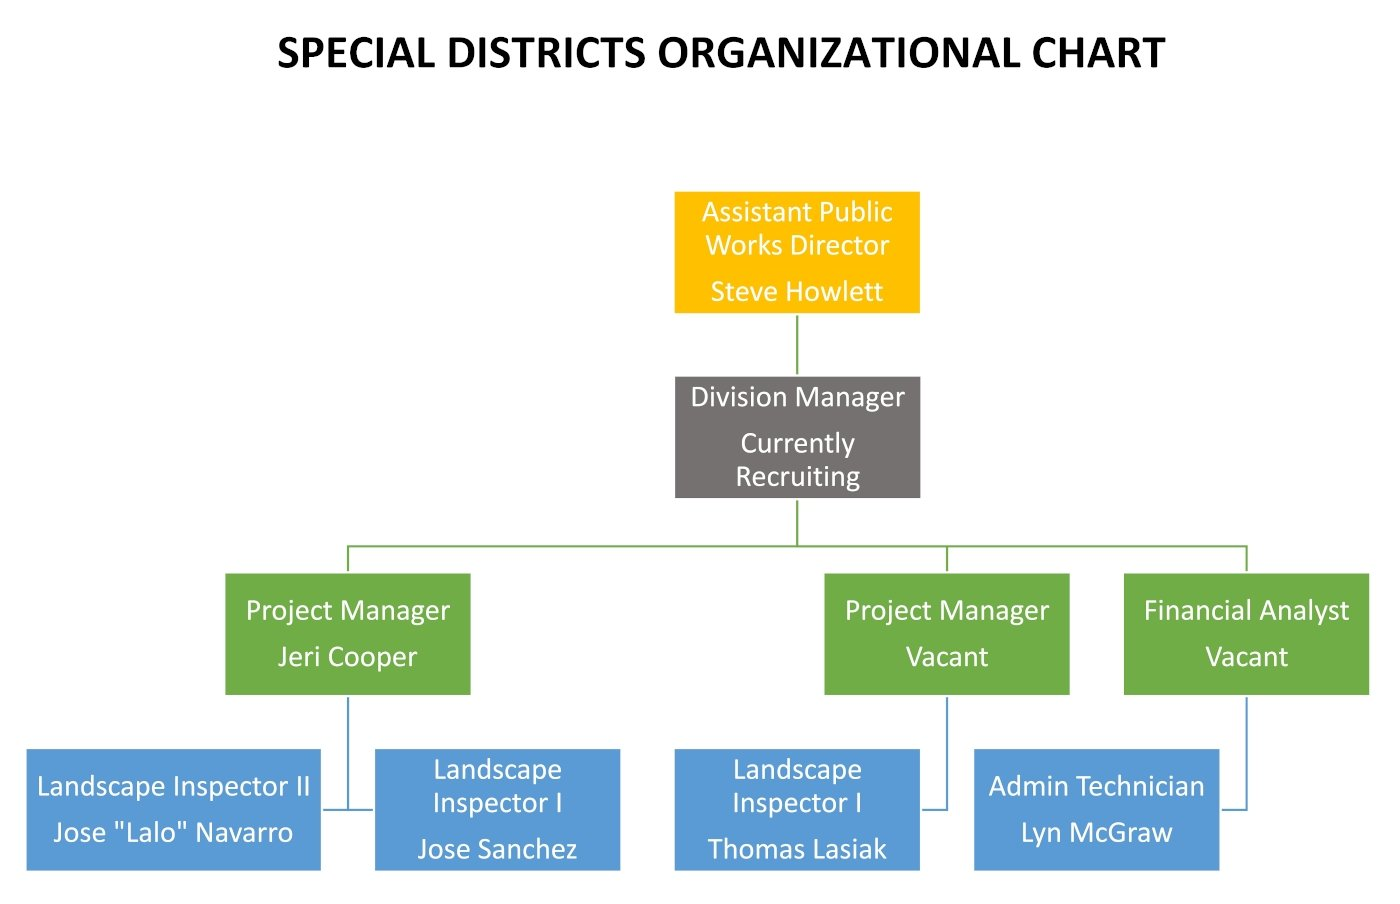 Special Districts Org Chart as of 2-11-2021